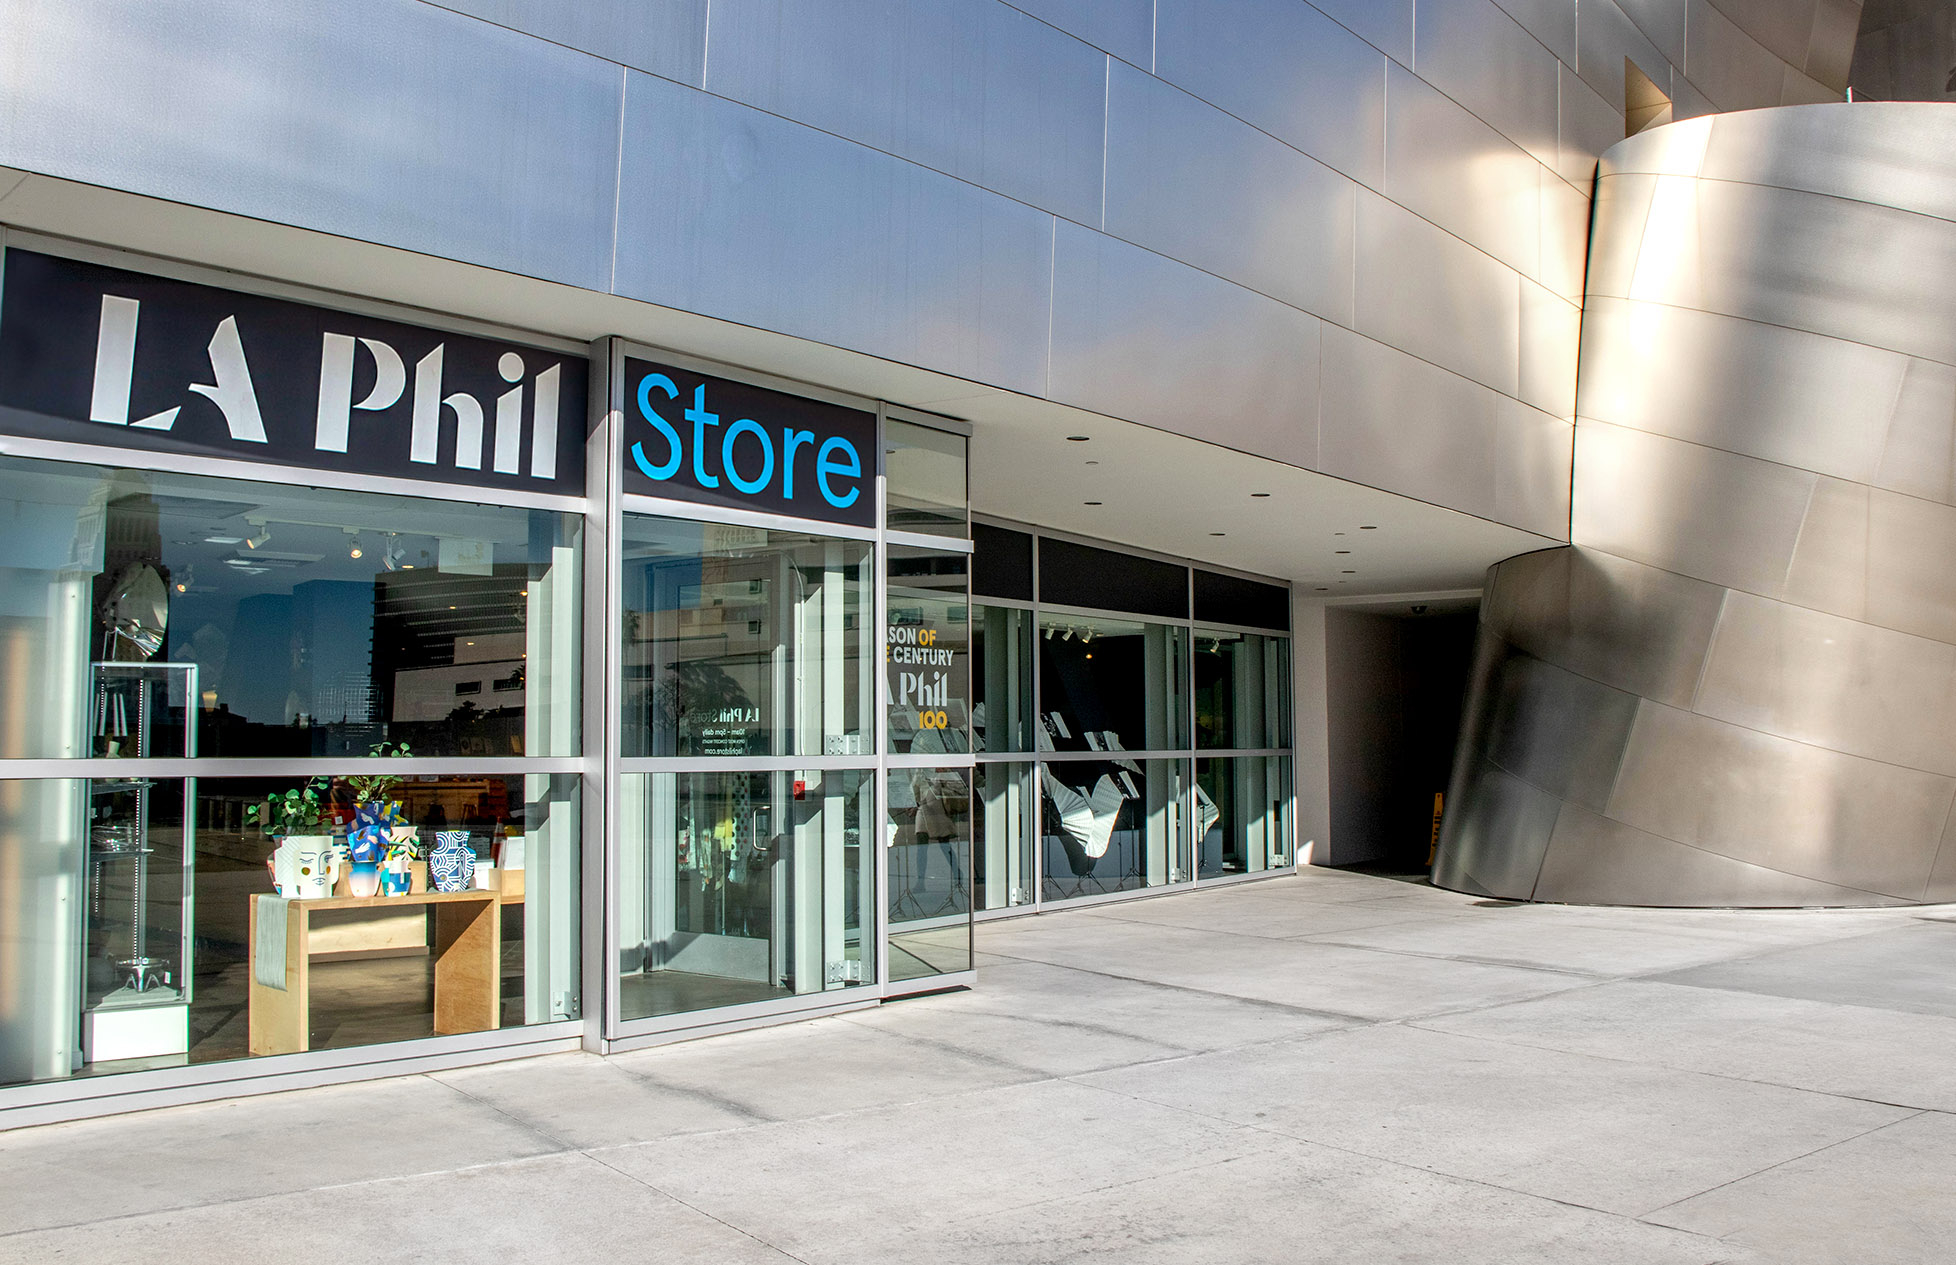 LA Phil Store at Walt Disney Concert Hall